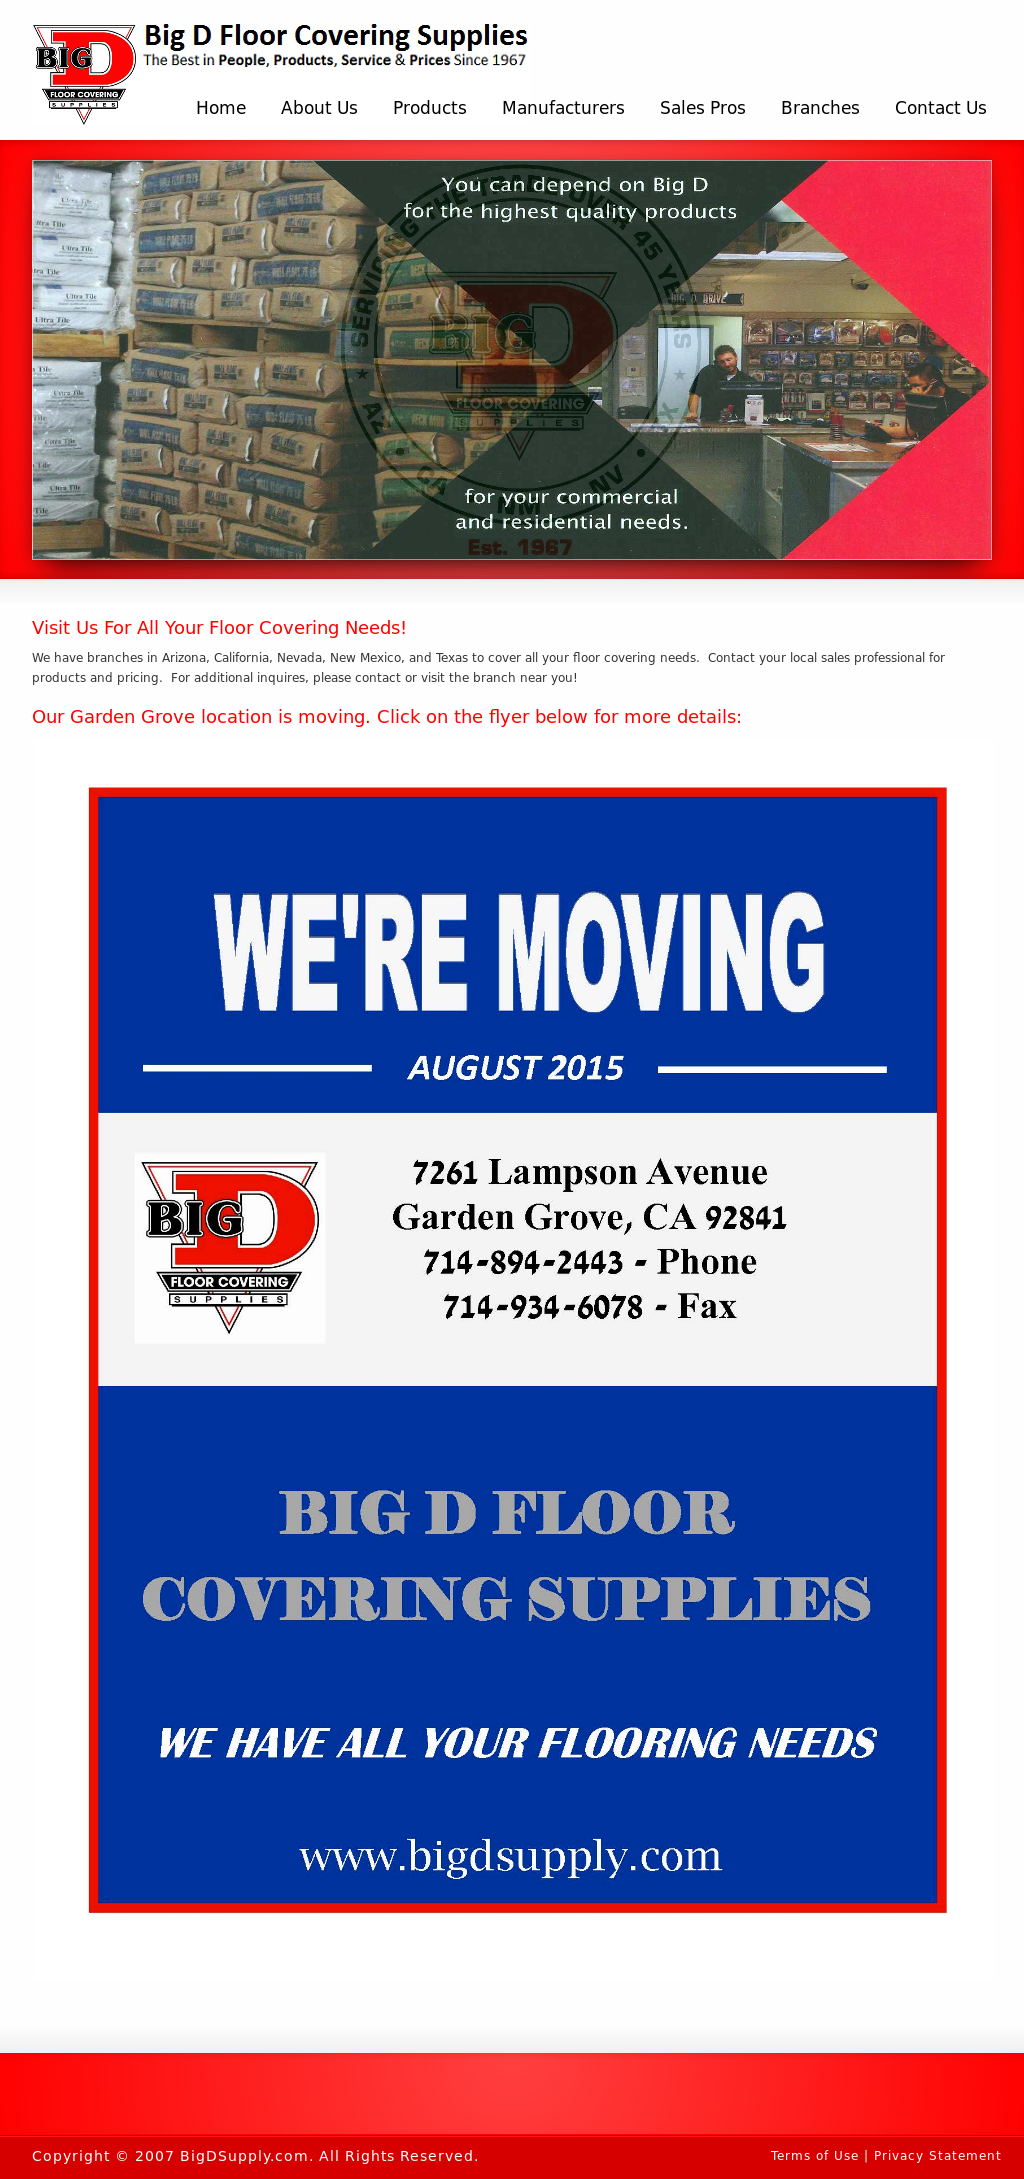 Bigdfloorcovering Competitors, Revenue and Employees - Owler